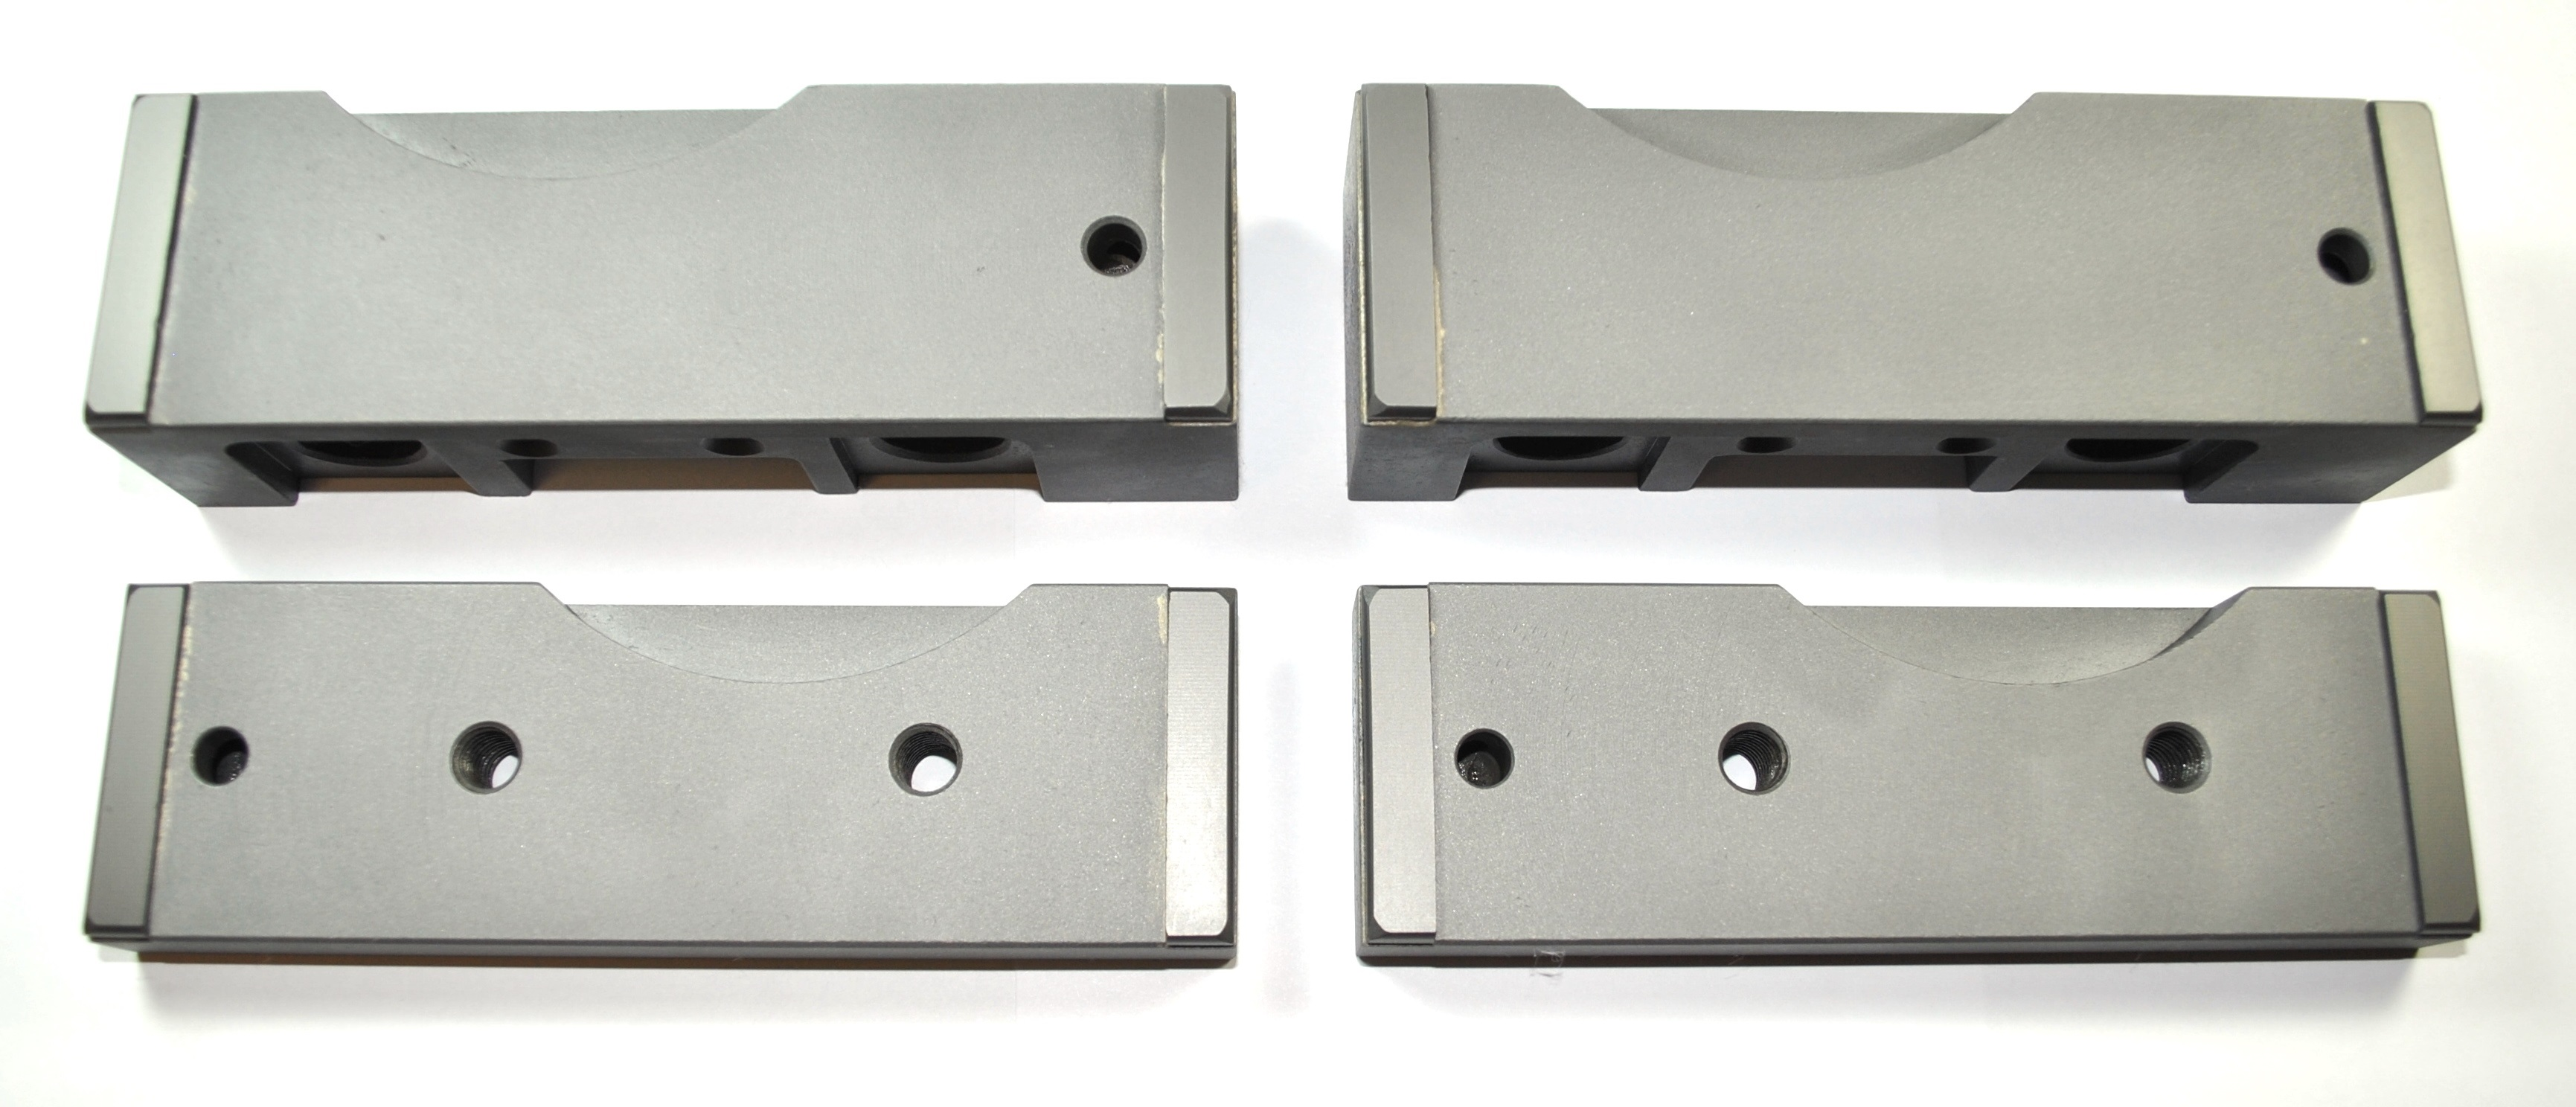 Fixed Guide 00867942 & Movable Guide 00867950